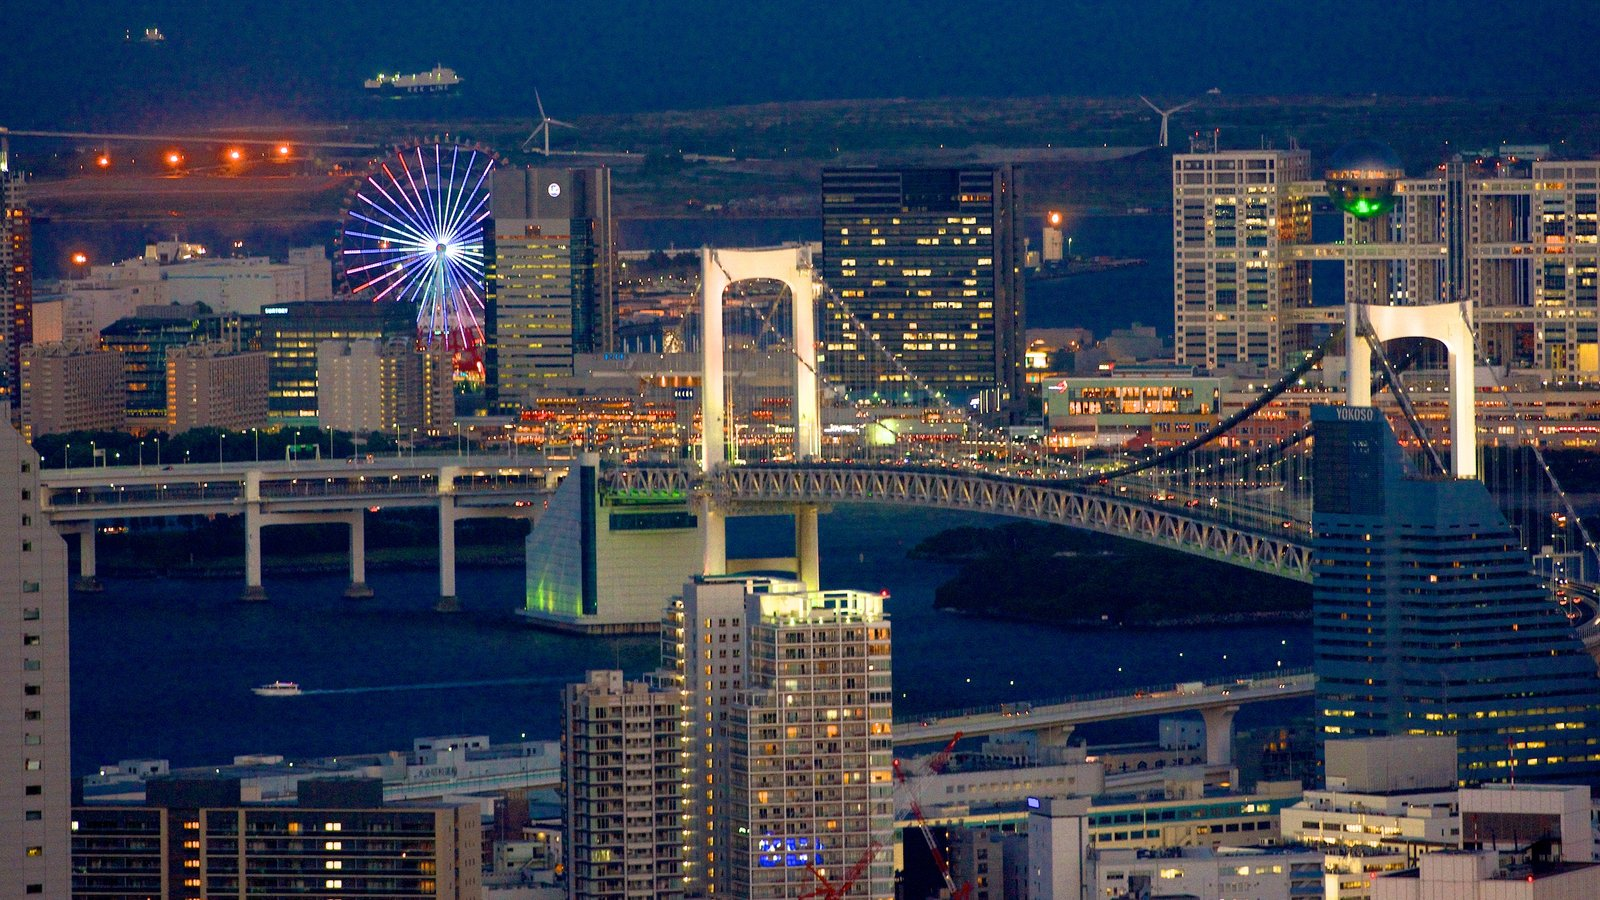 Tokyo which includes a bay or harbor, modern architecture and a bridge